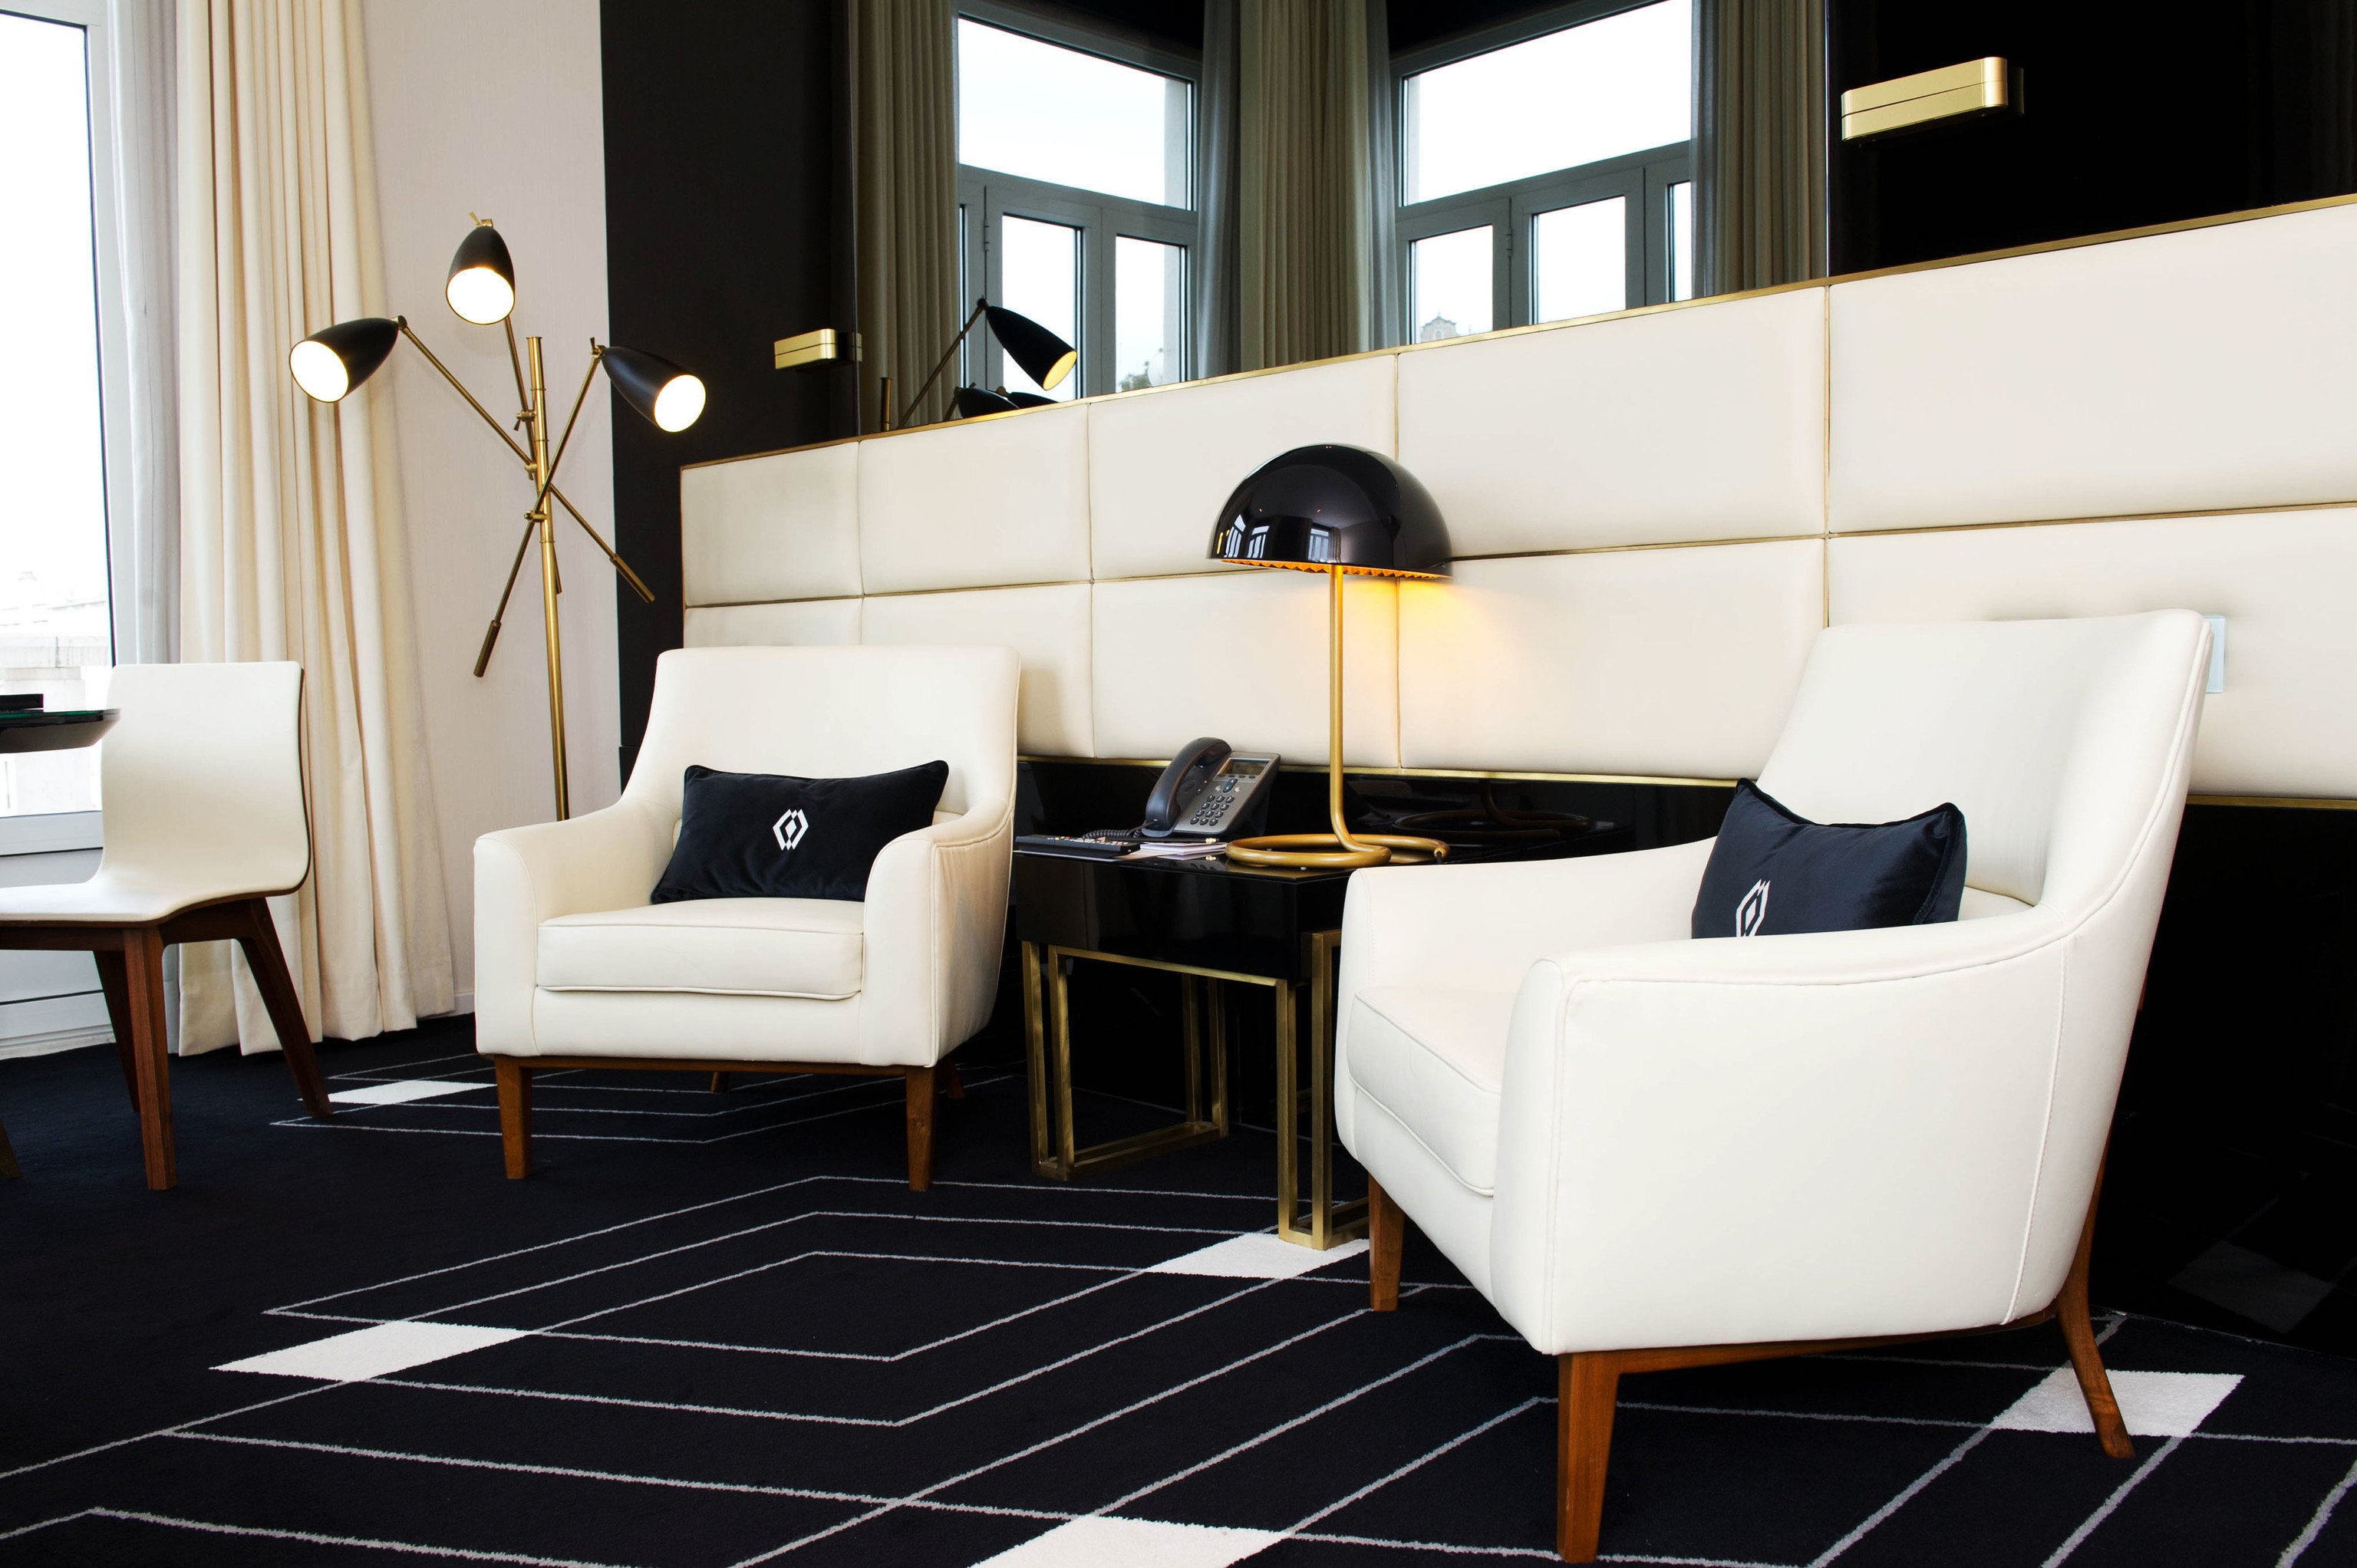 living room black flooring home Suite yacht office chair